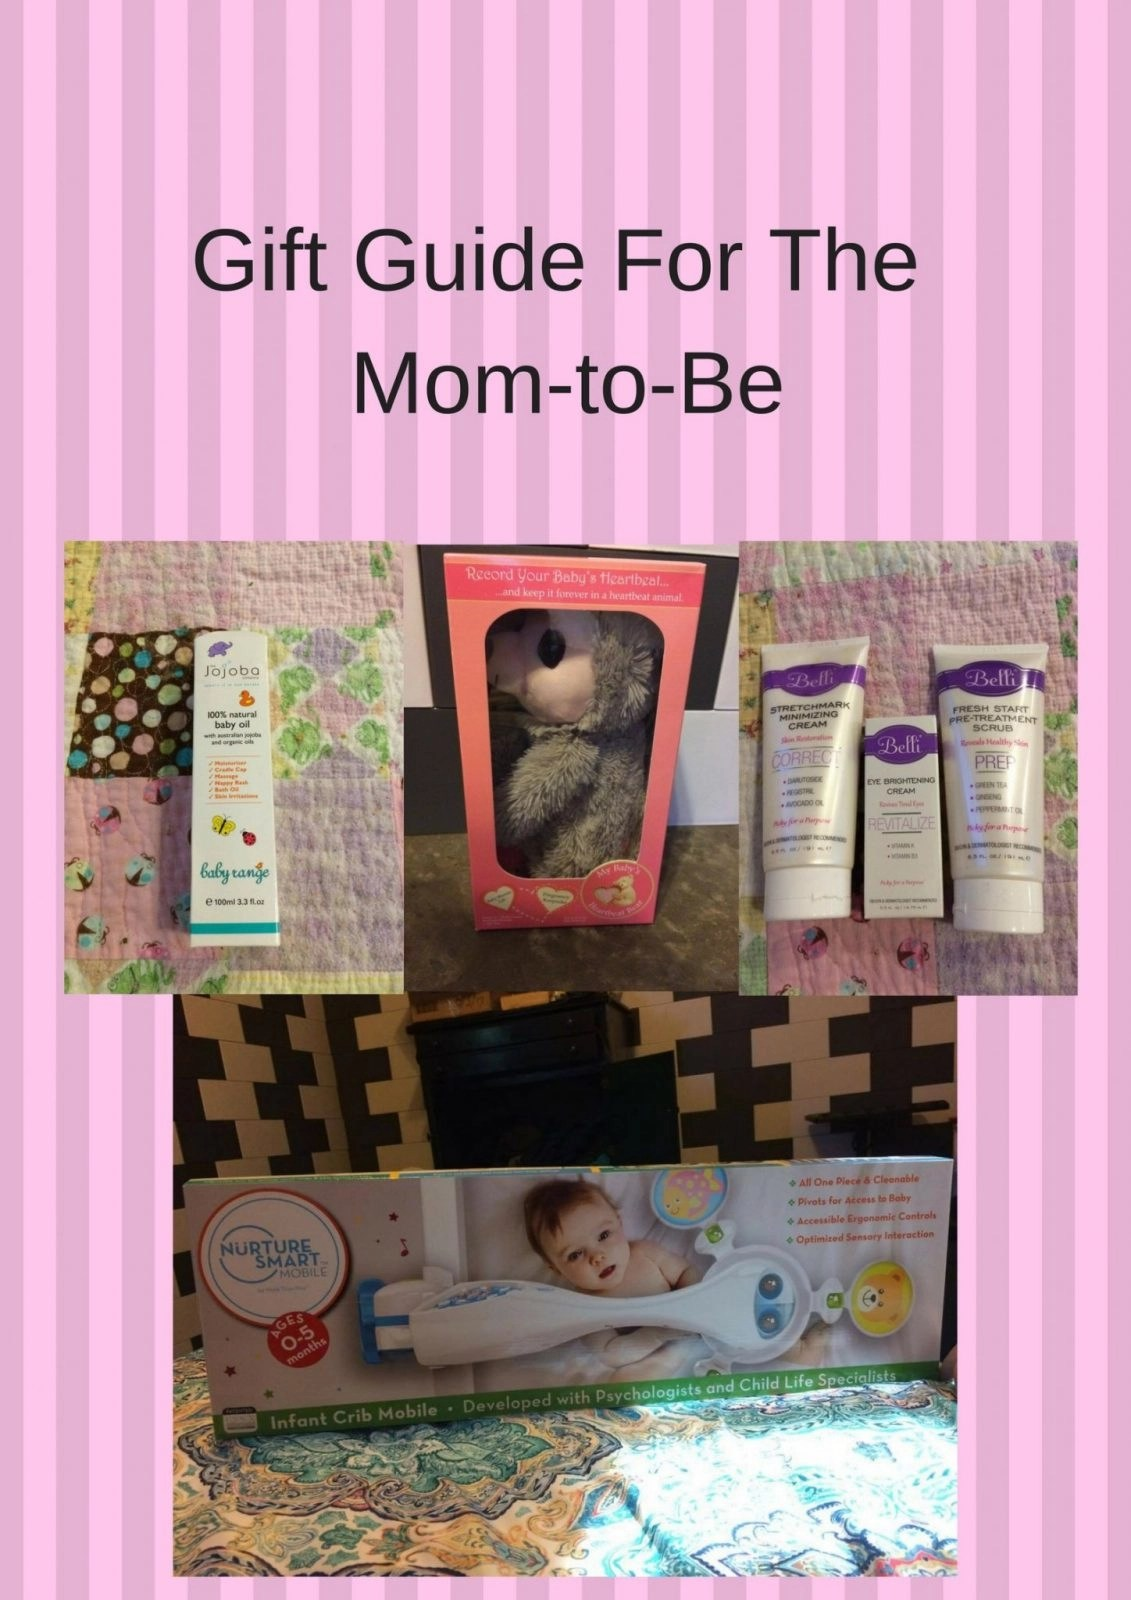 Gift Guide For The Mom-To-Be -- The Jojoba Company Australia, Belli Skin Care, My Baby's Heartbeat Bear Collection, Nurture Smart Baby Mobile